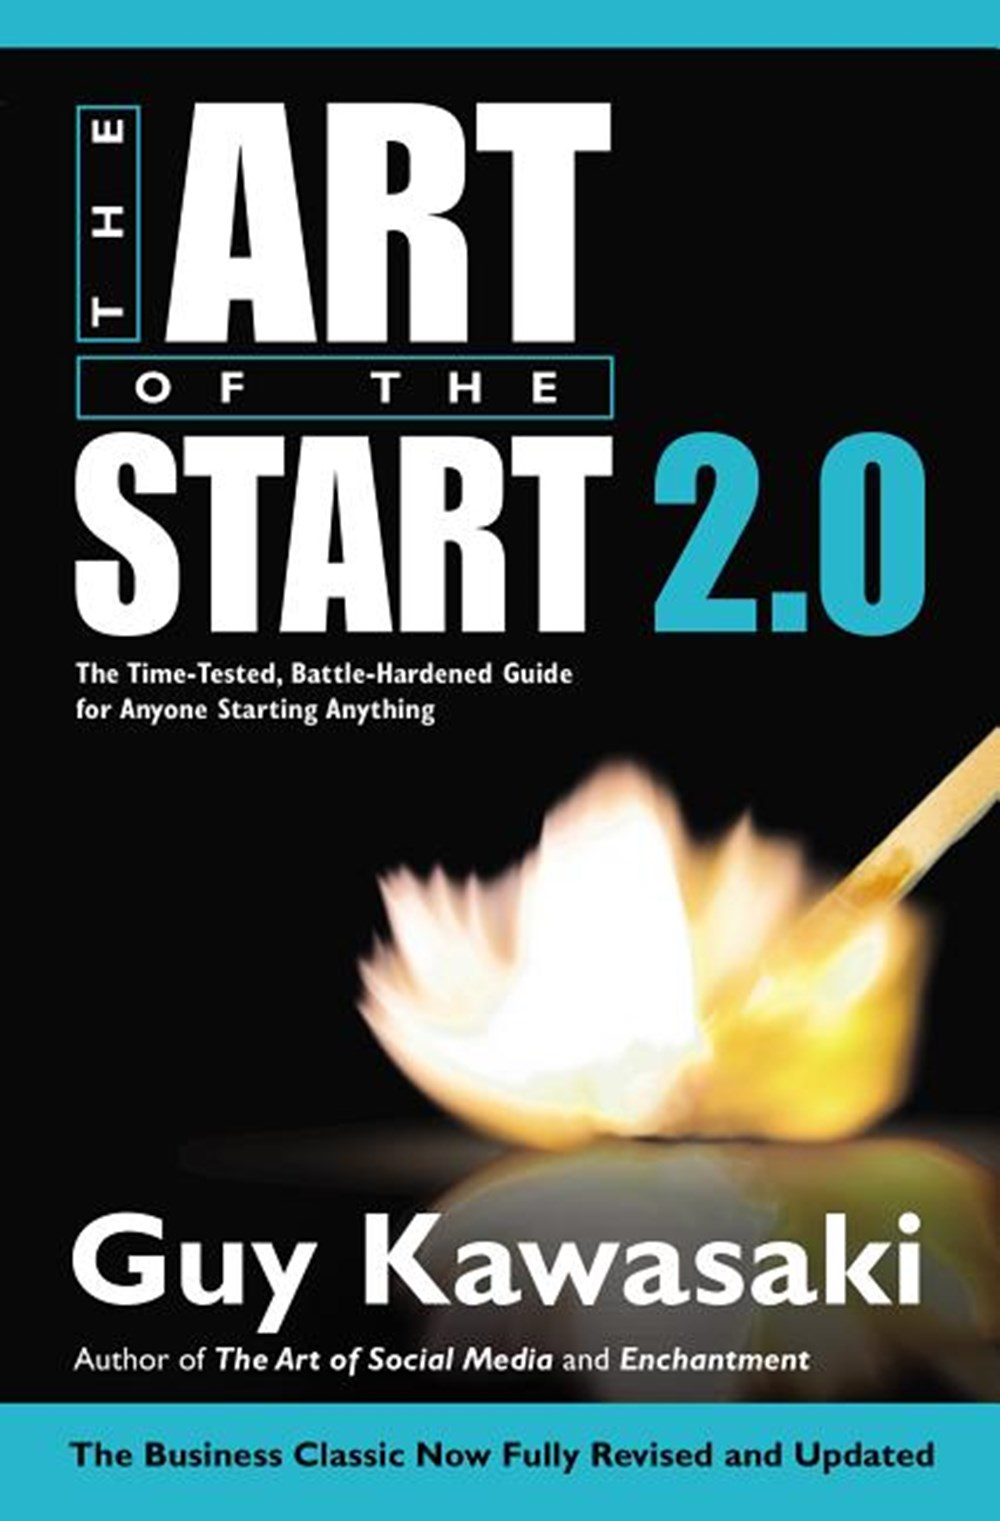 Art of the Start 2.0 The Time-Tested, Battle-Hardened Guide for Anyone Starting Anything